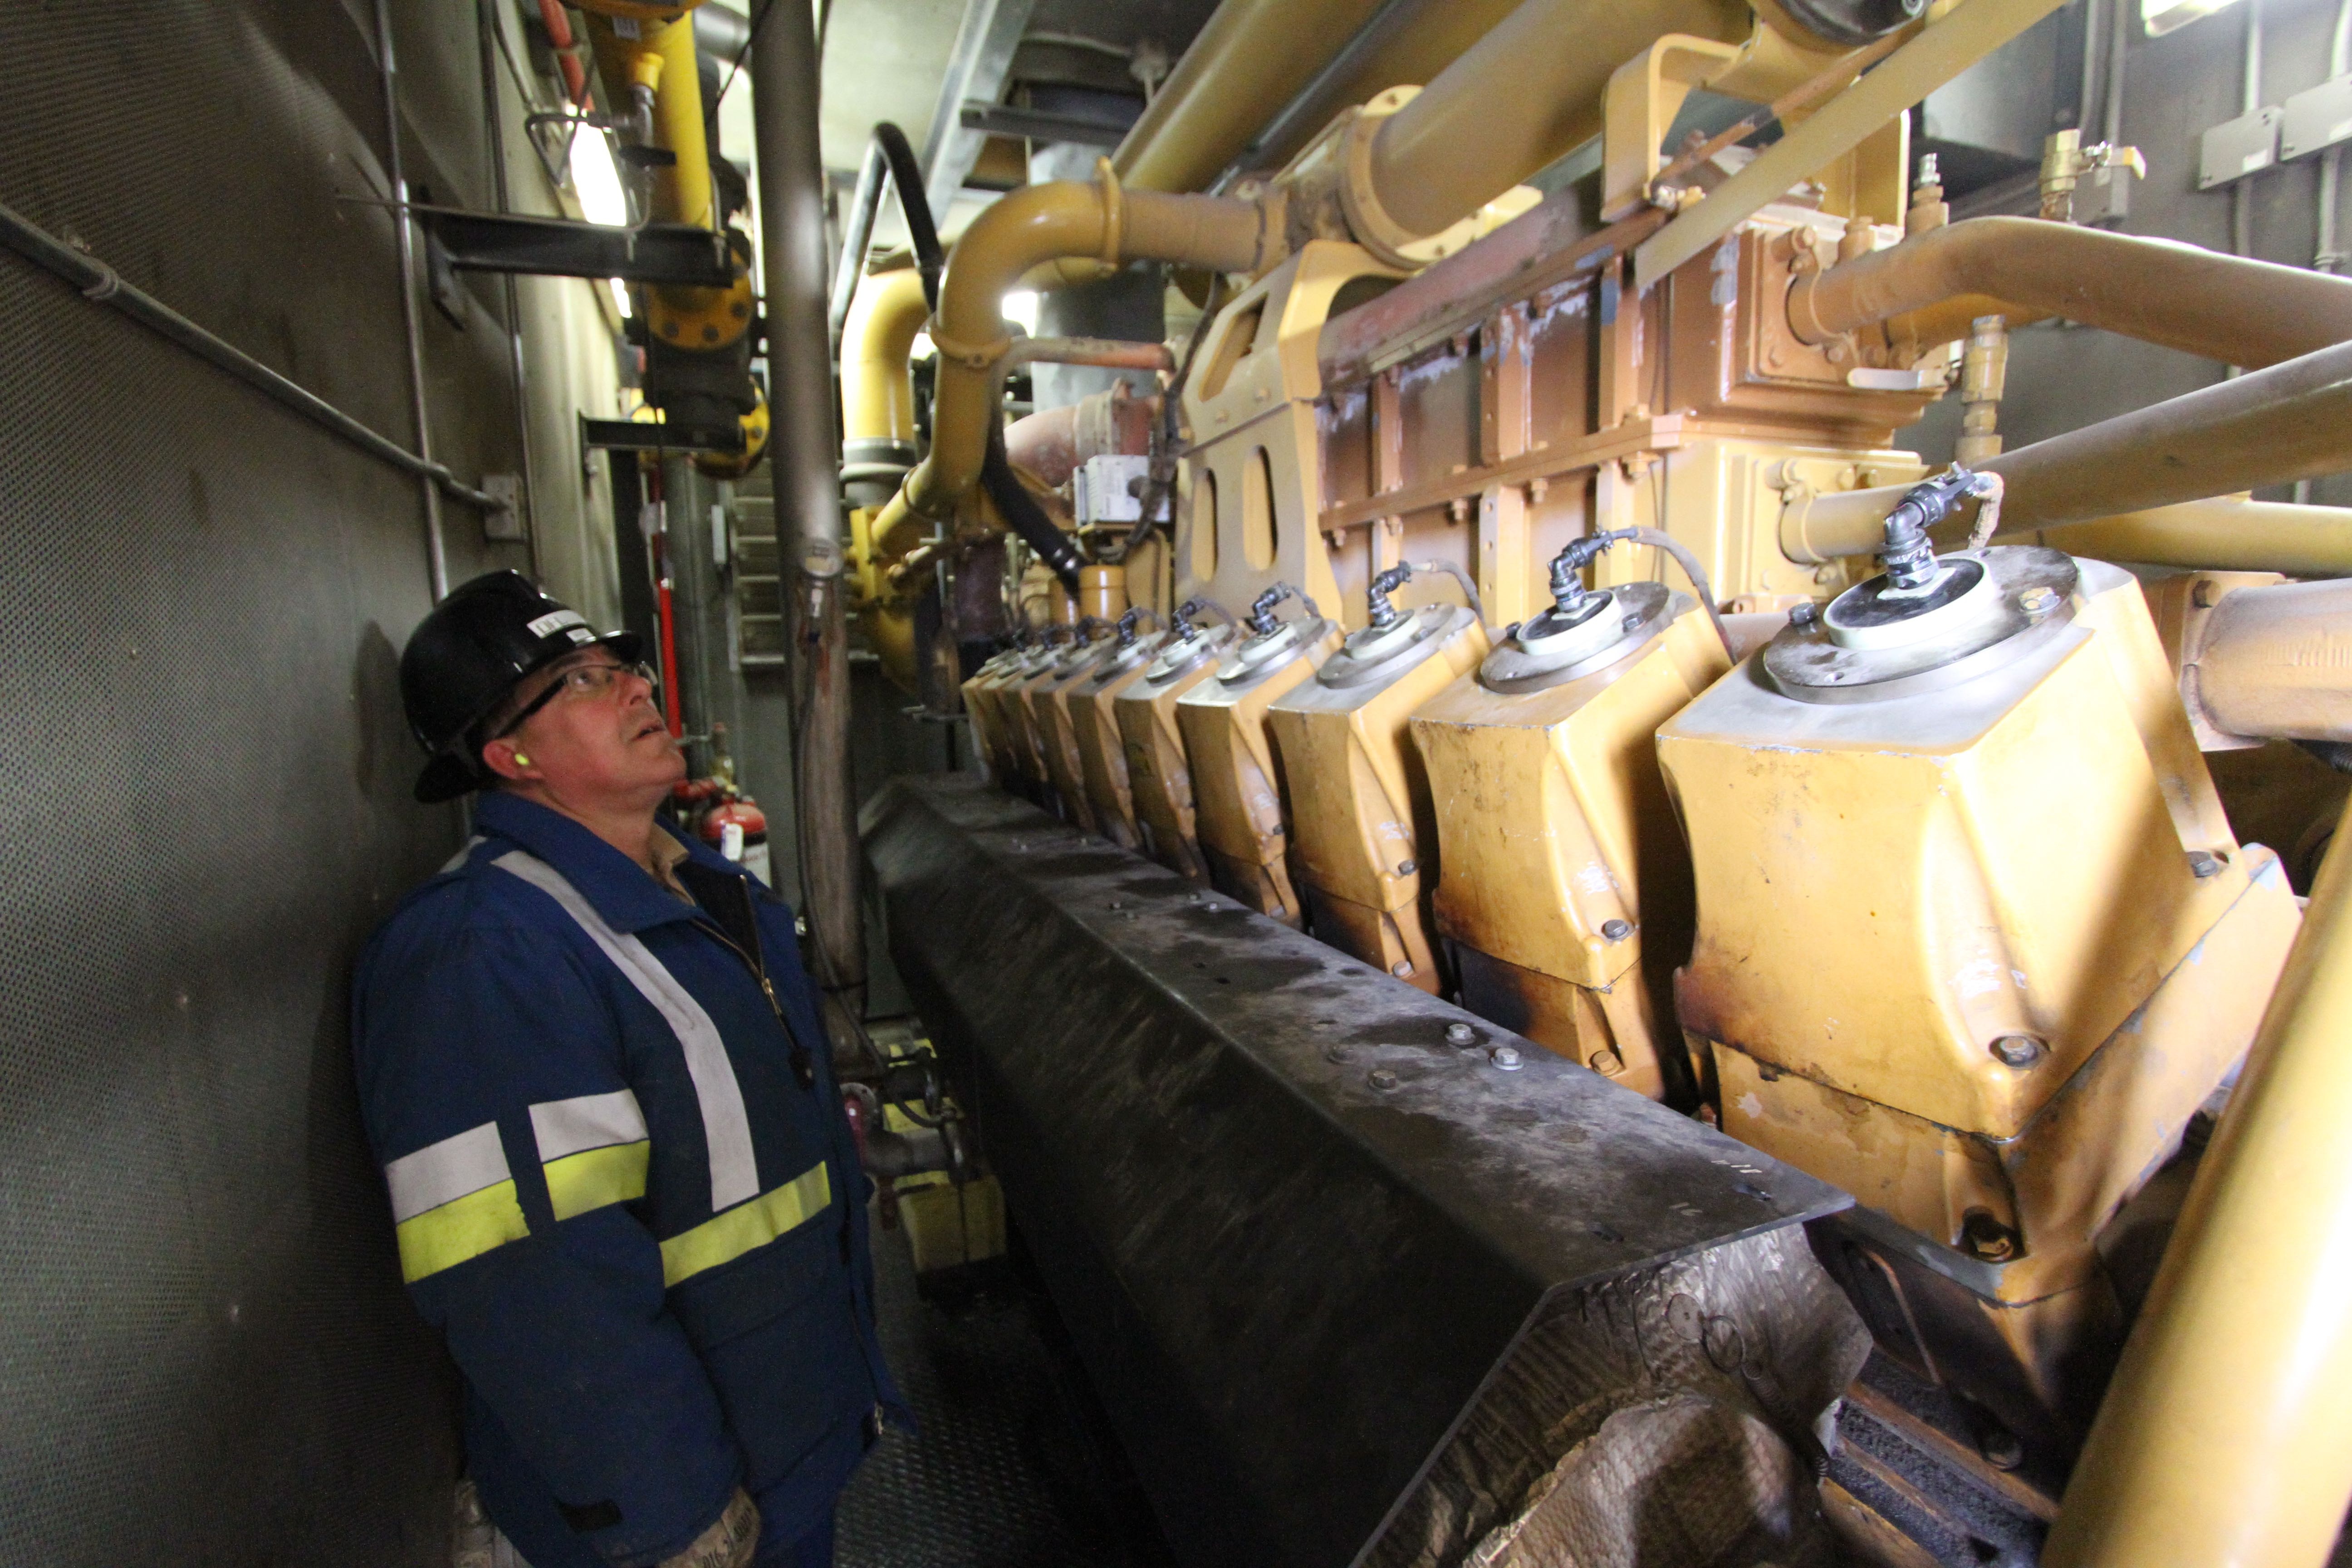 33 Landfill gas How old garbage can generate electricity Green